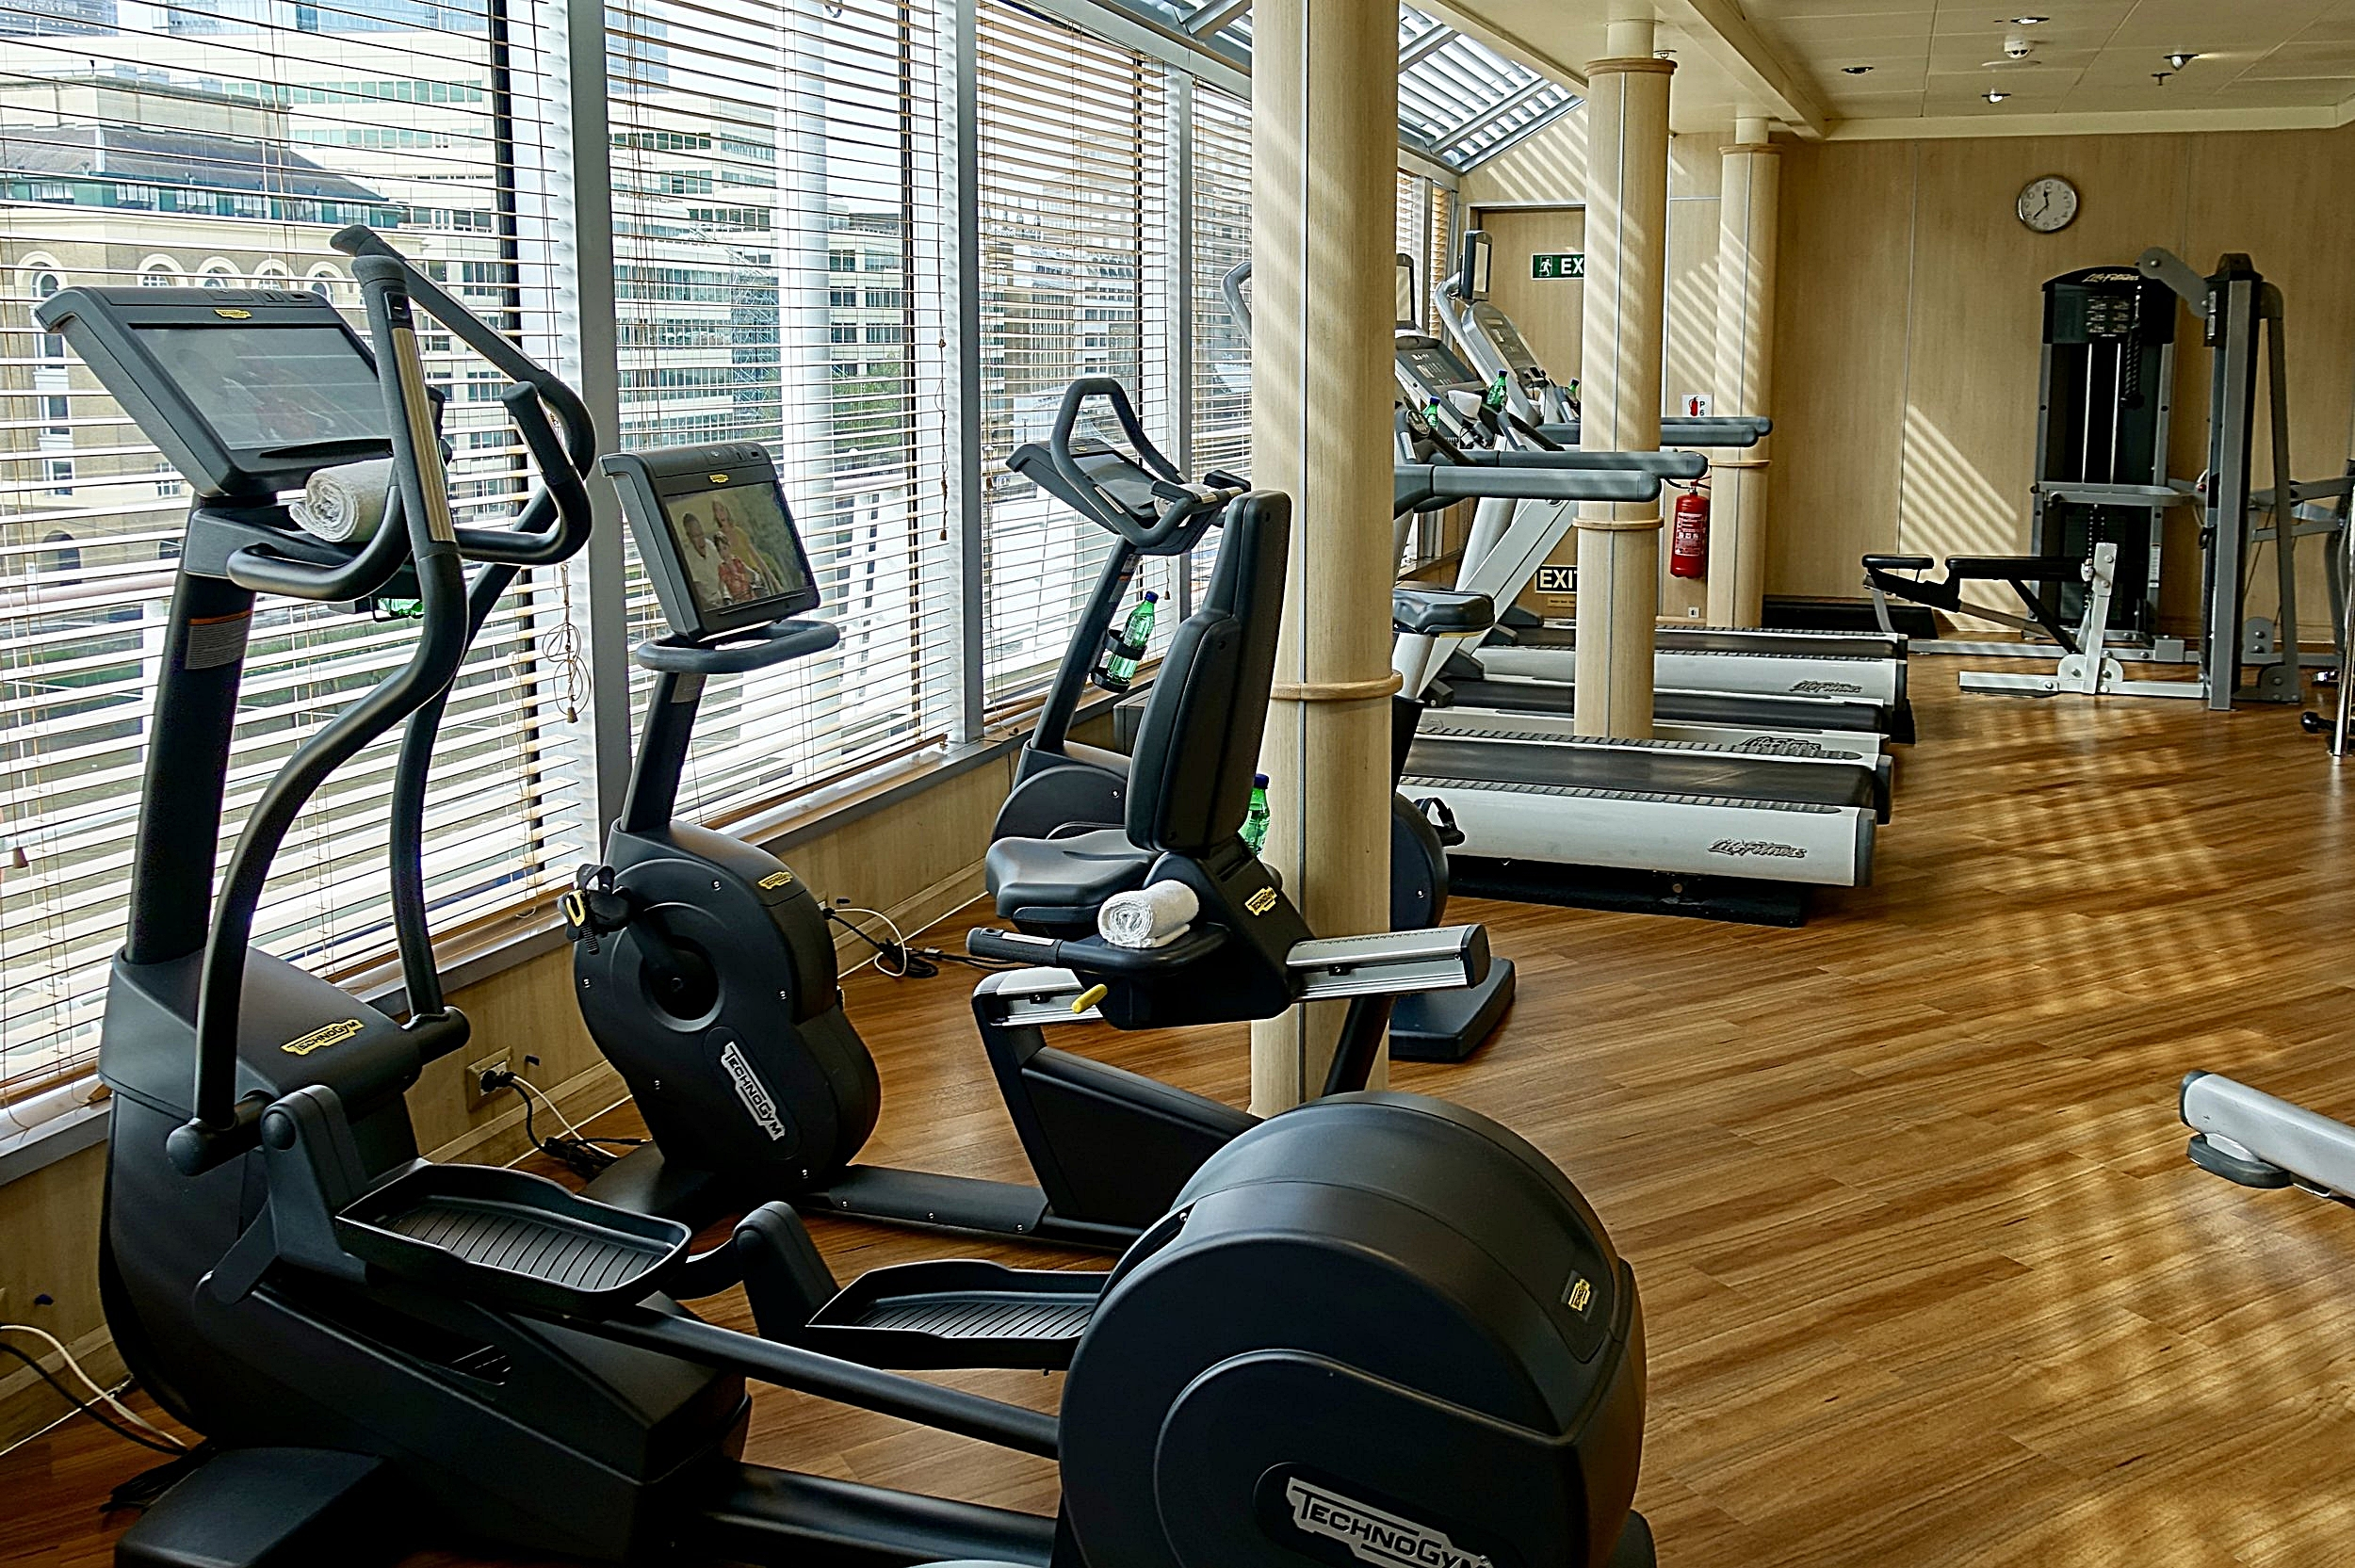 The well equipped gym.